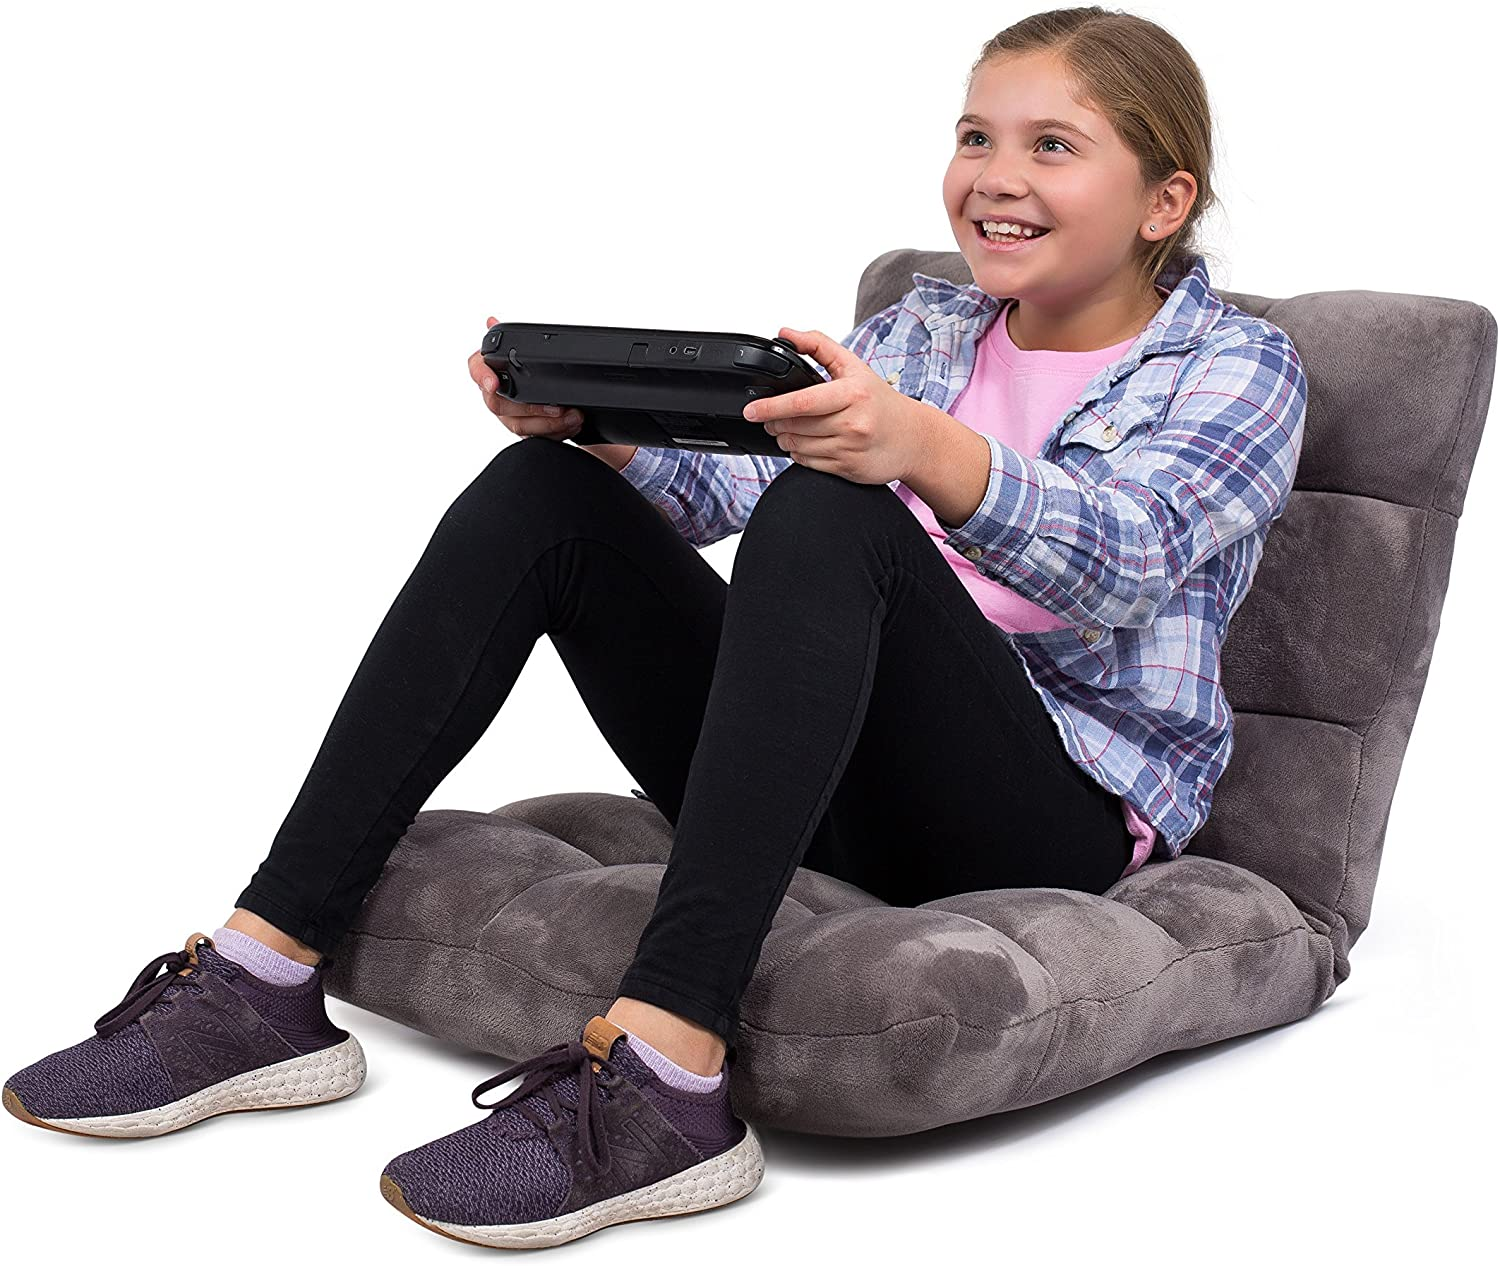 BIRDROCK HOME Adjustable 14-Position Memory Foam Floor Chair – Padded Gaming Chair – Comfortable Back Support – Rocker – Great for Reading Games Meditating – Fully Assembled – Grey